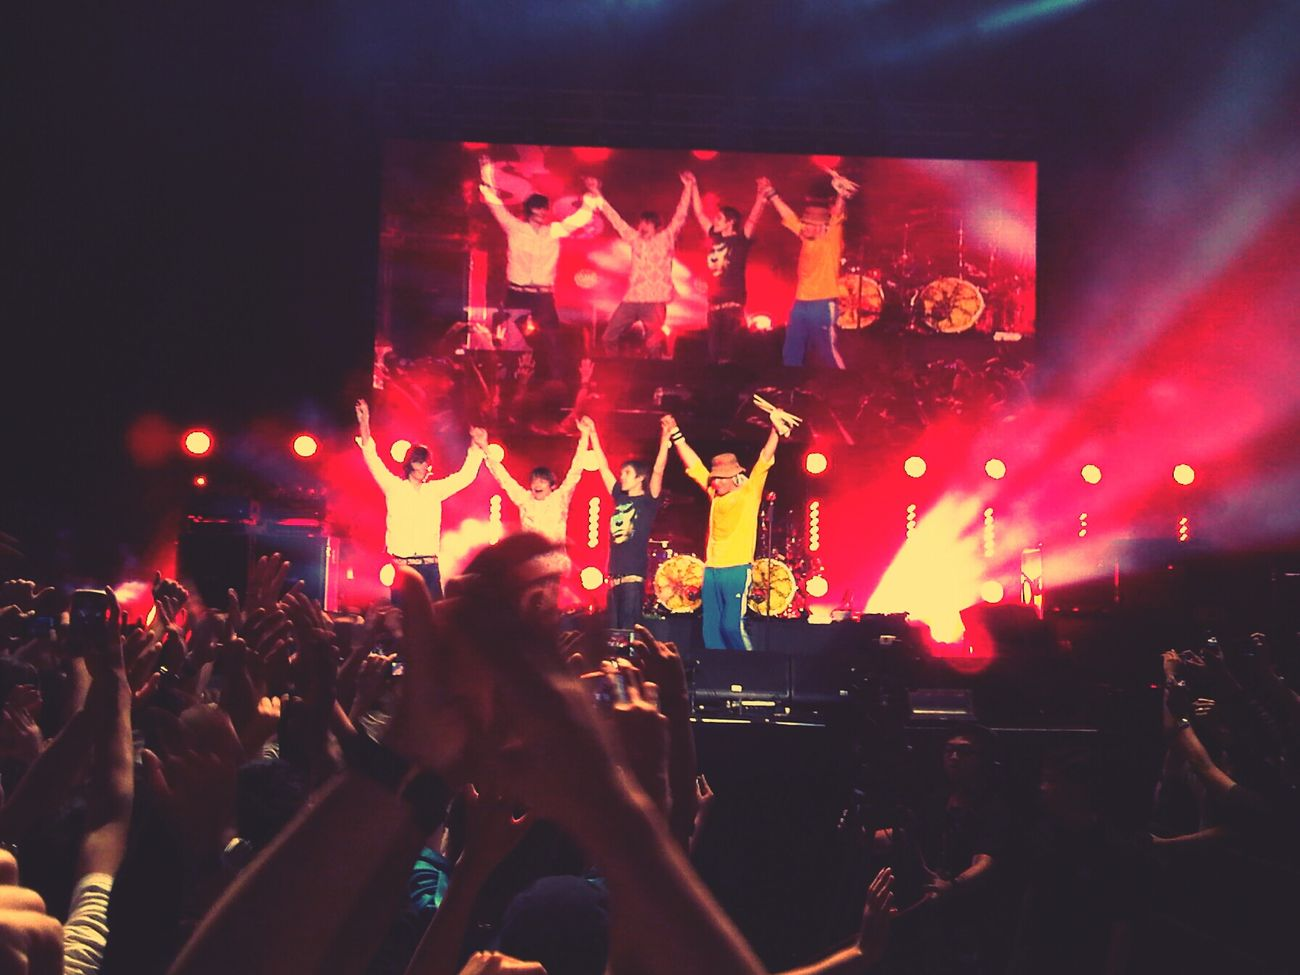 Bandswelove The Stone Roses live at Singapore Indoor Stadium, July 2012